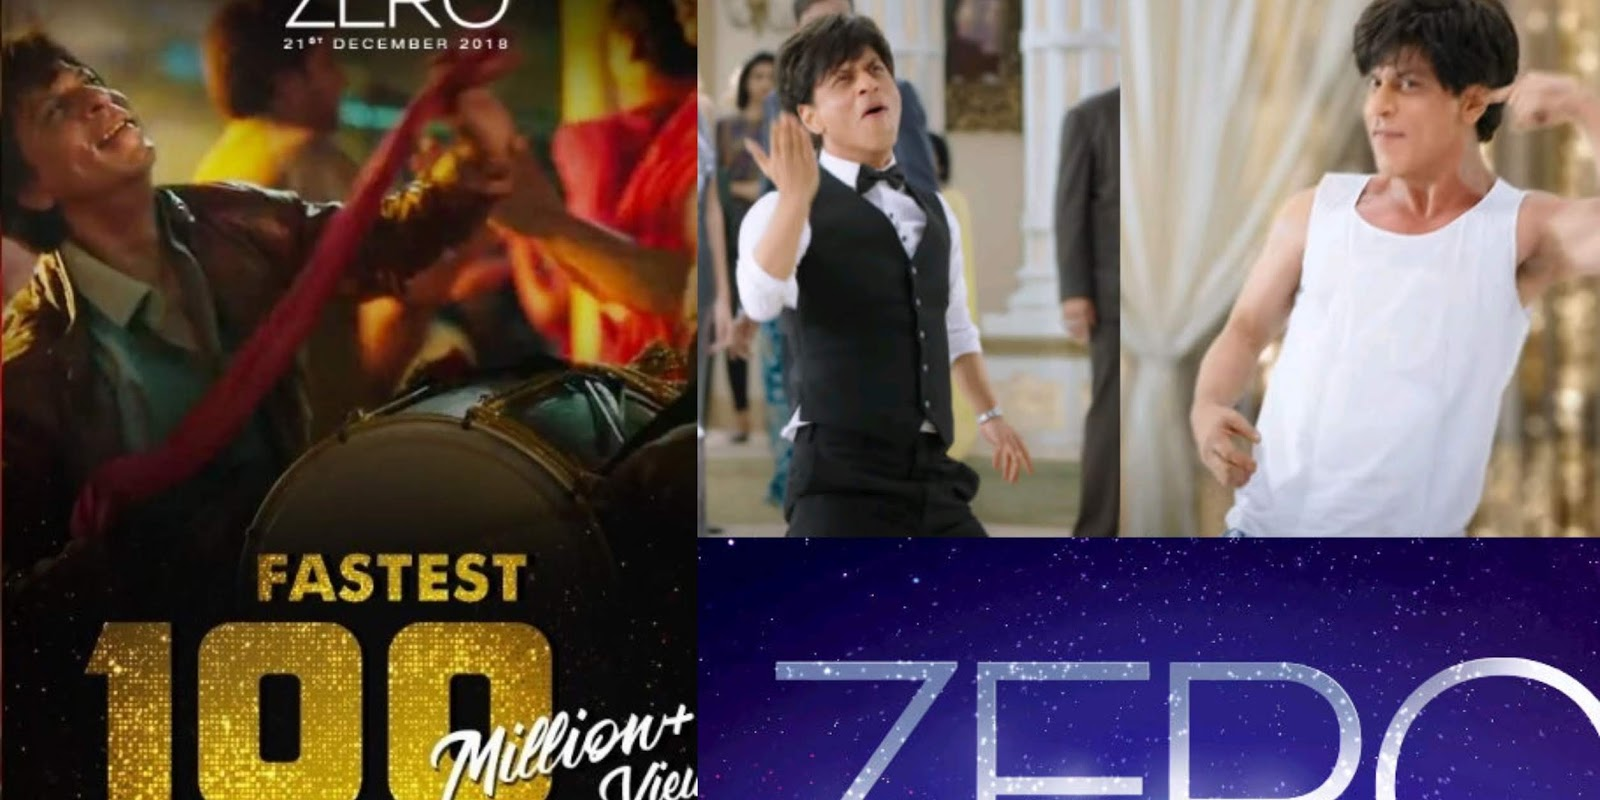 Shah Rukh Khan Zero Trailer Breaks Yet Another Record On Youtube!